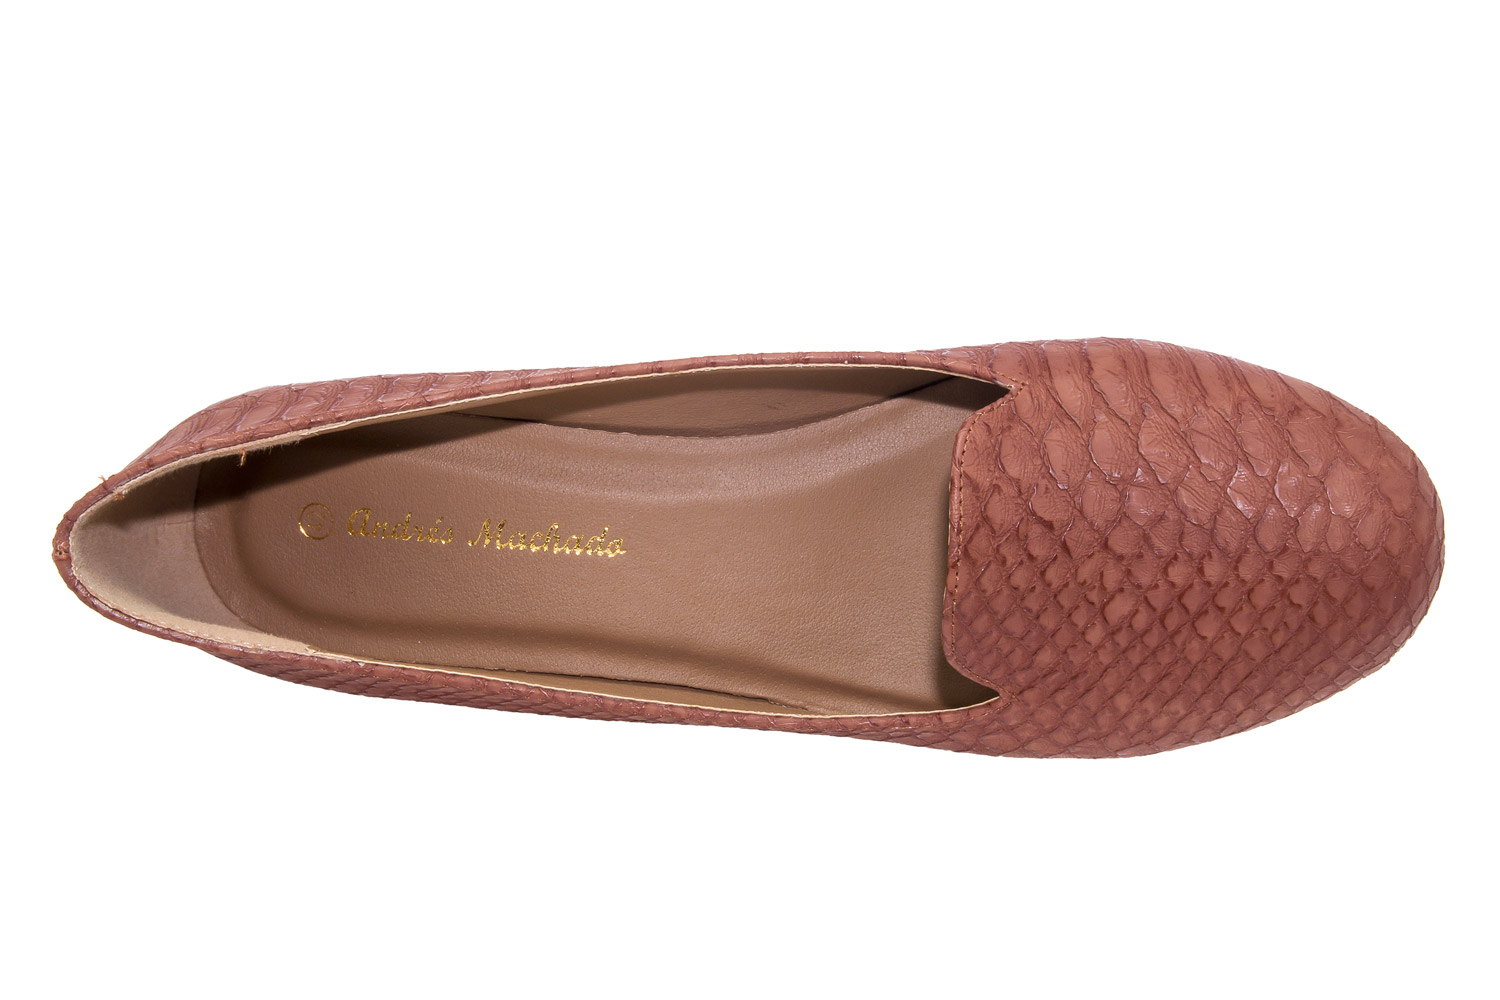 Slipper Tacon Serpiente Marron